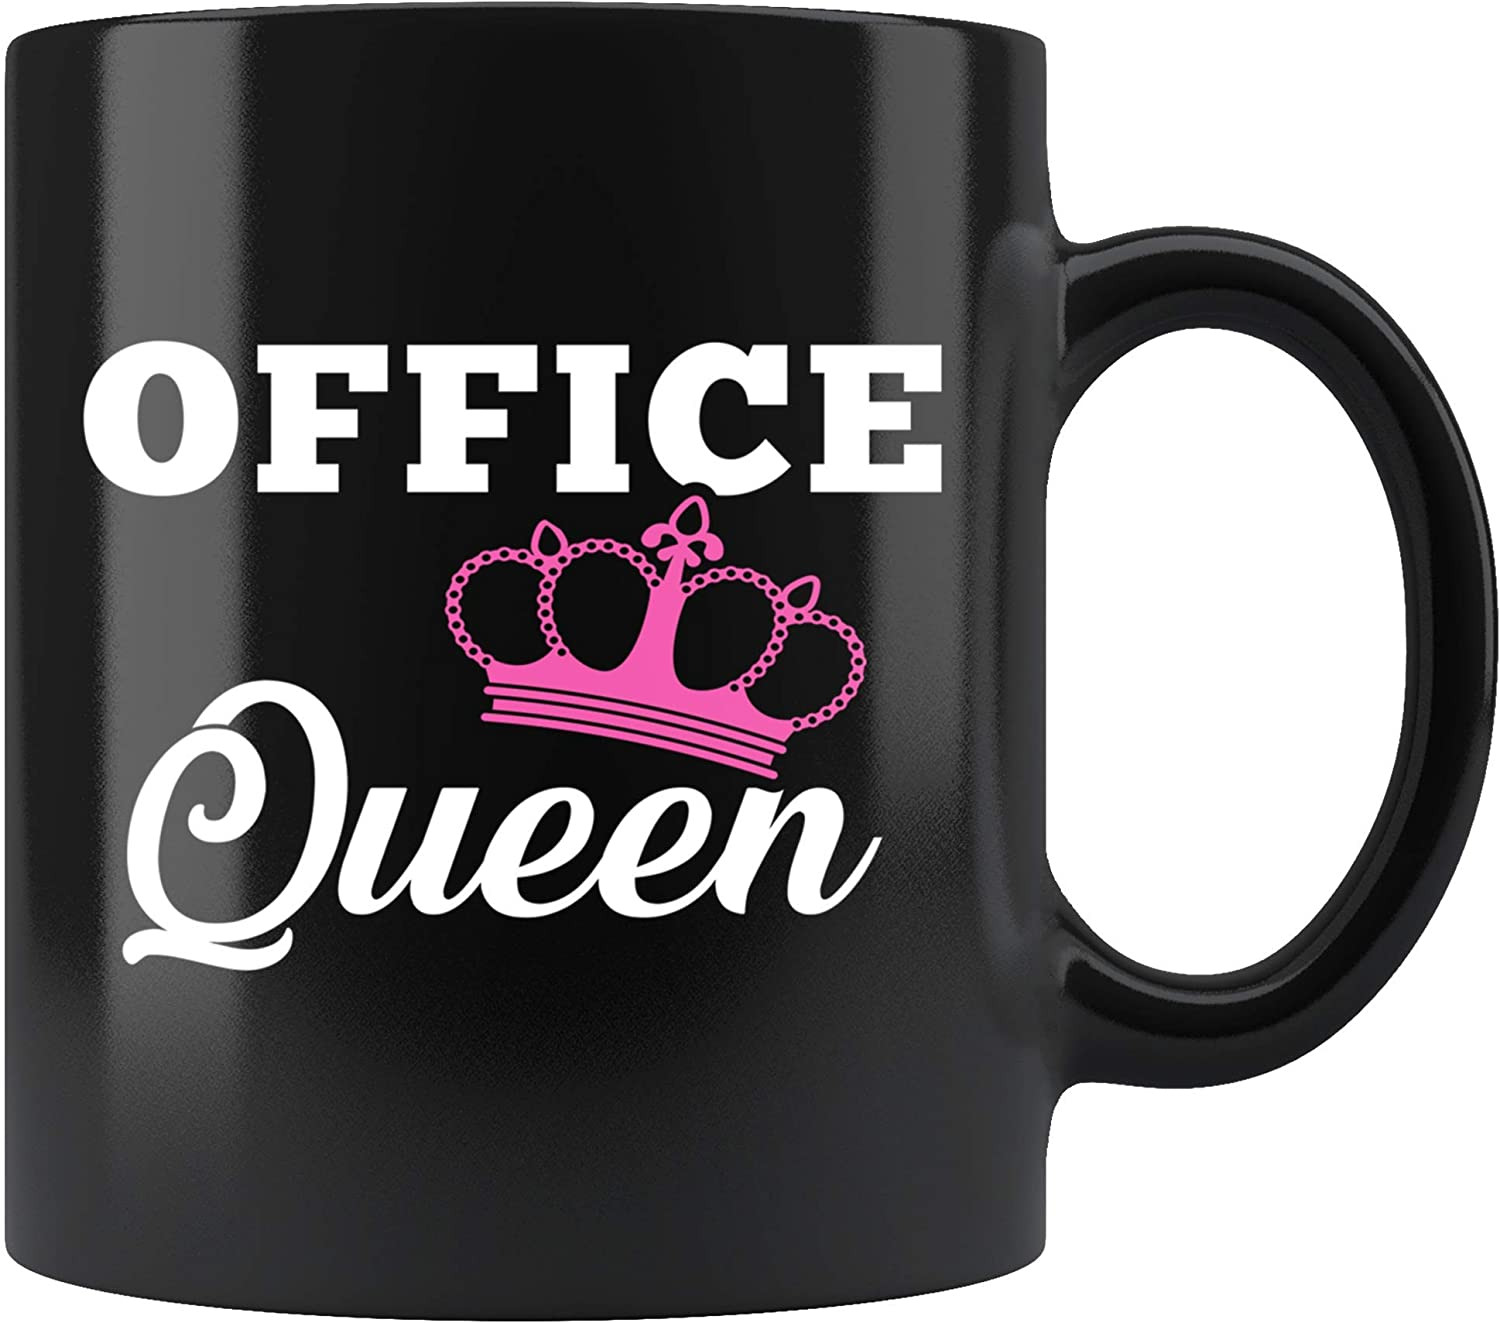 Office Queen Mug 11oz in Black - Funny Officemate Coworker Gift